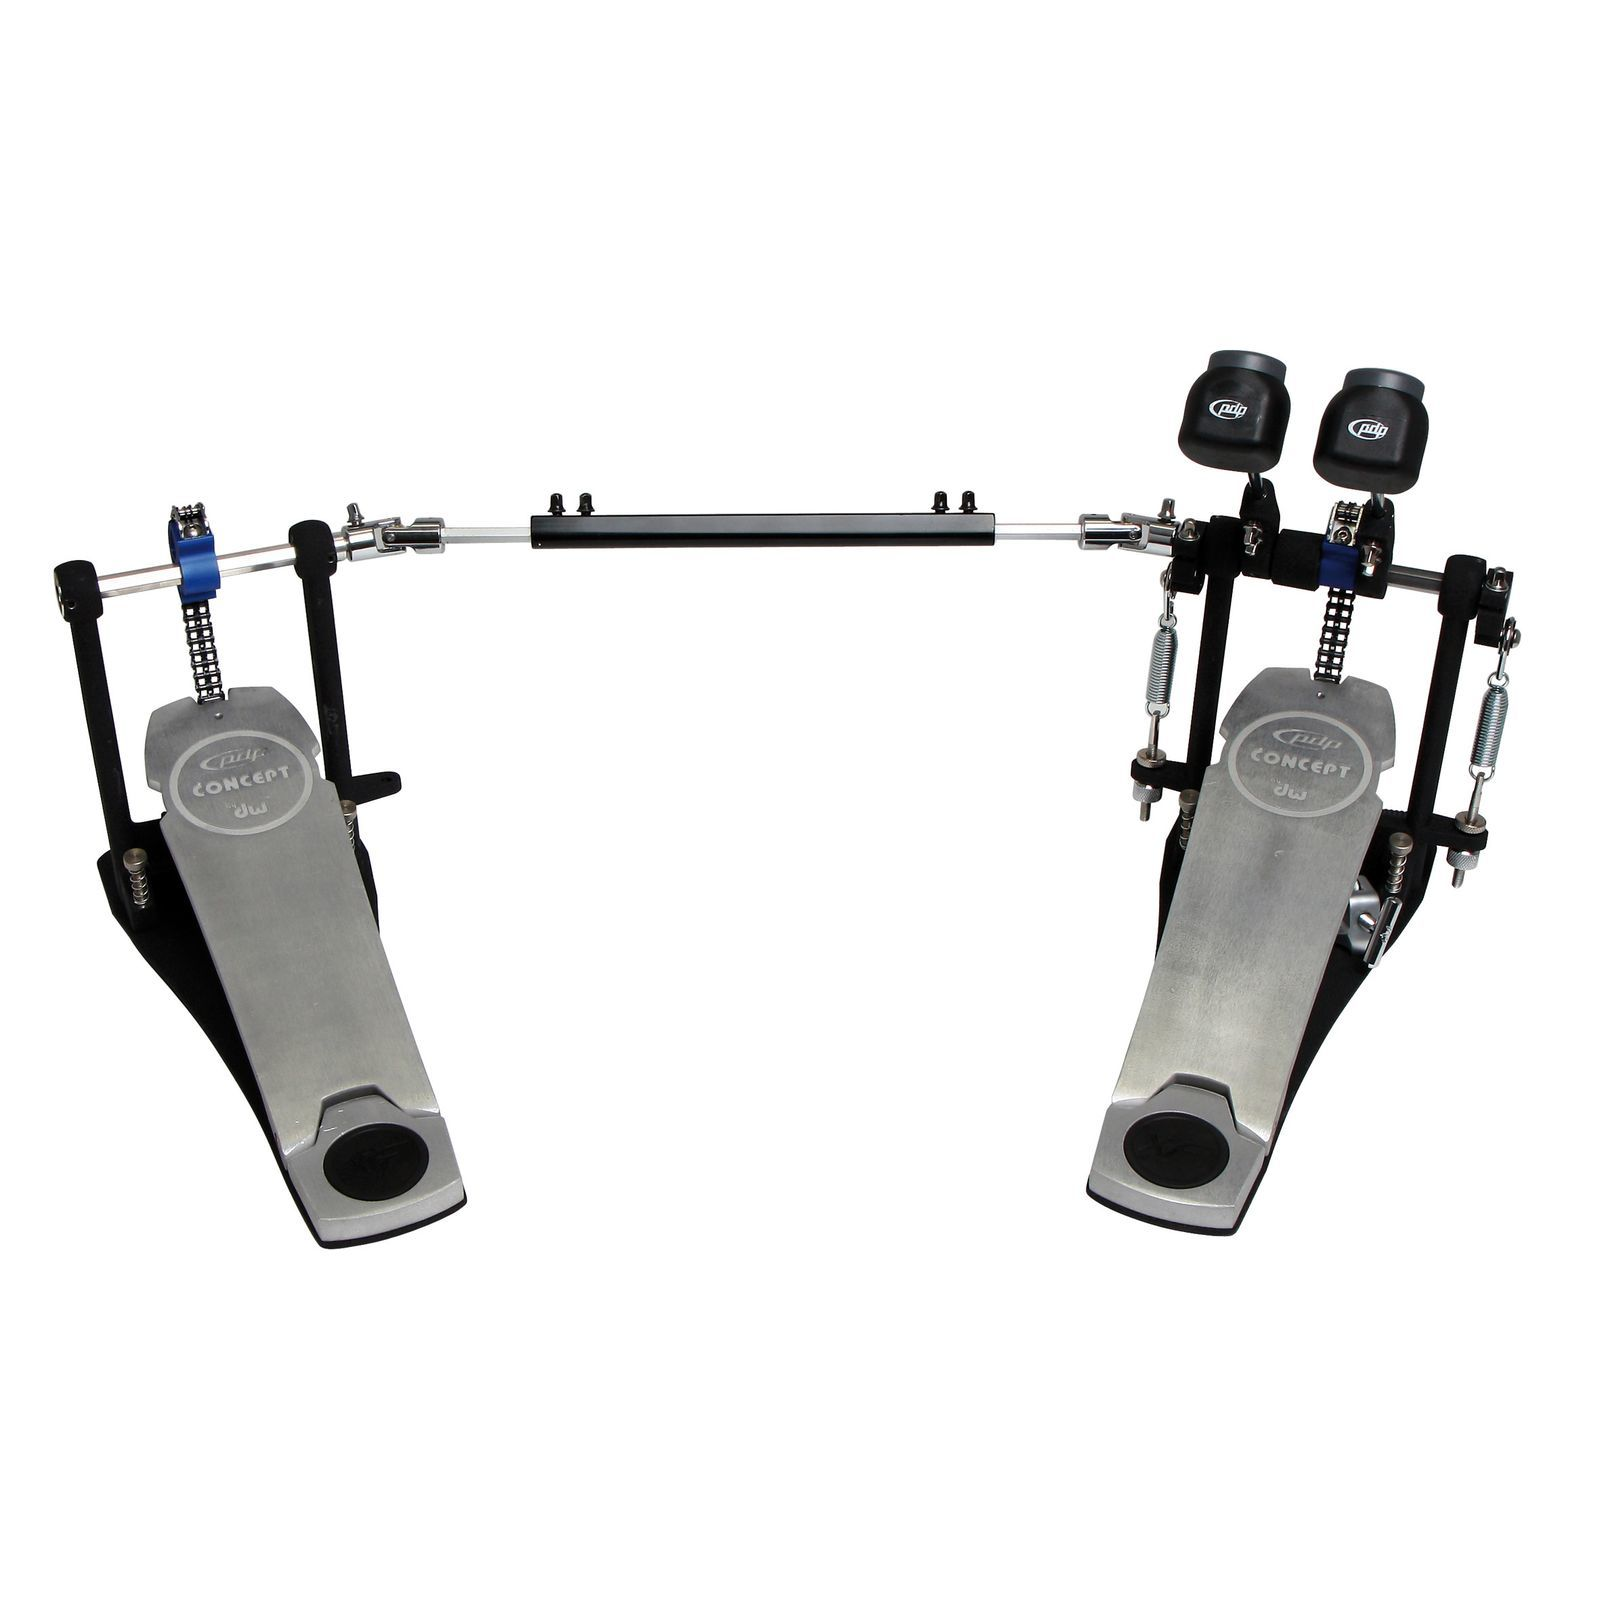 Pacific Drums PDDPCXF Concept Double Pedal Extended Footboard